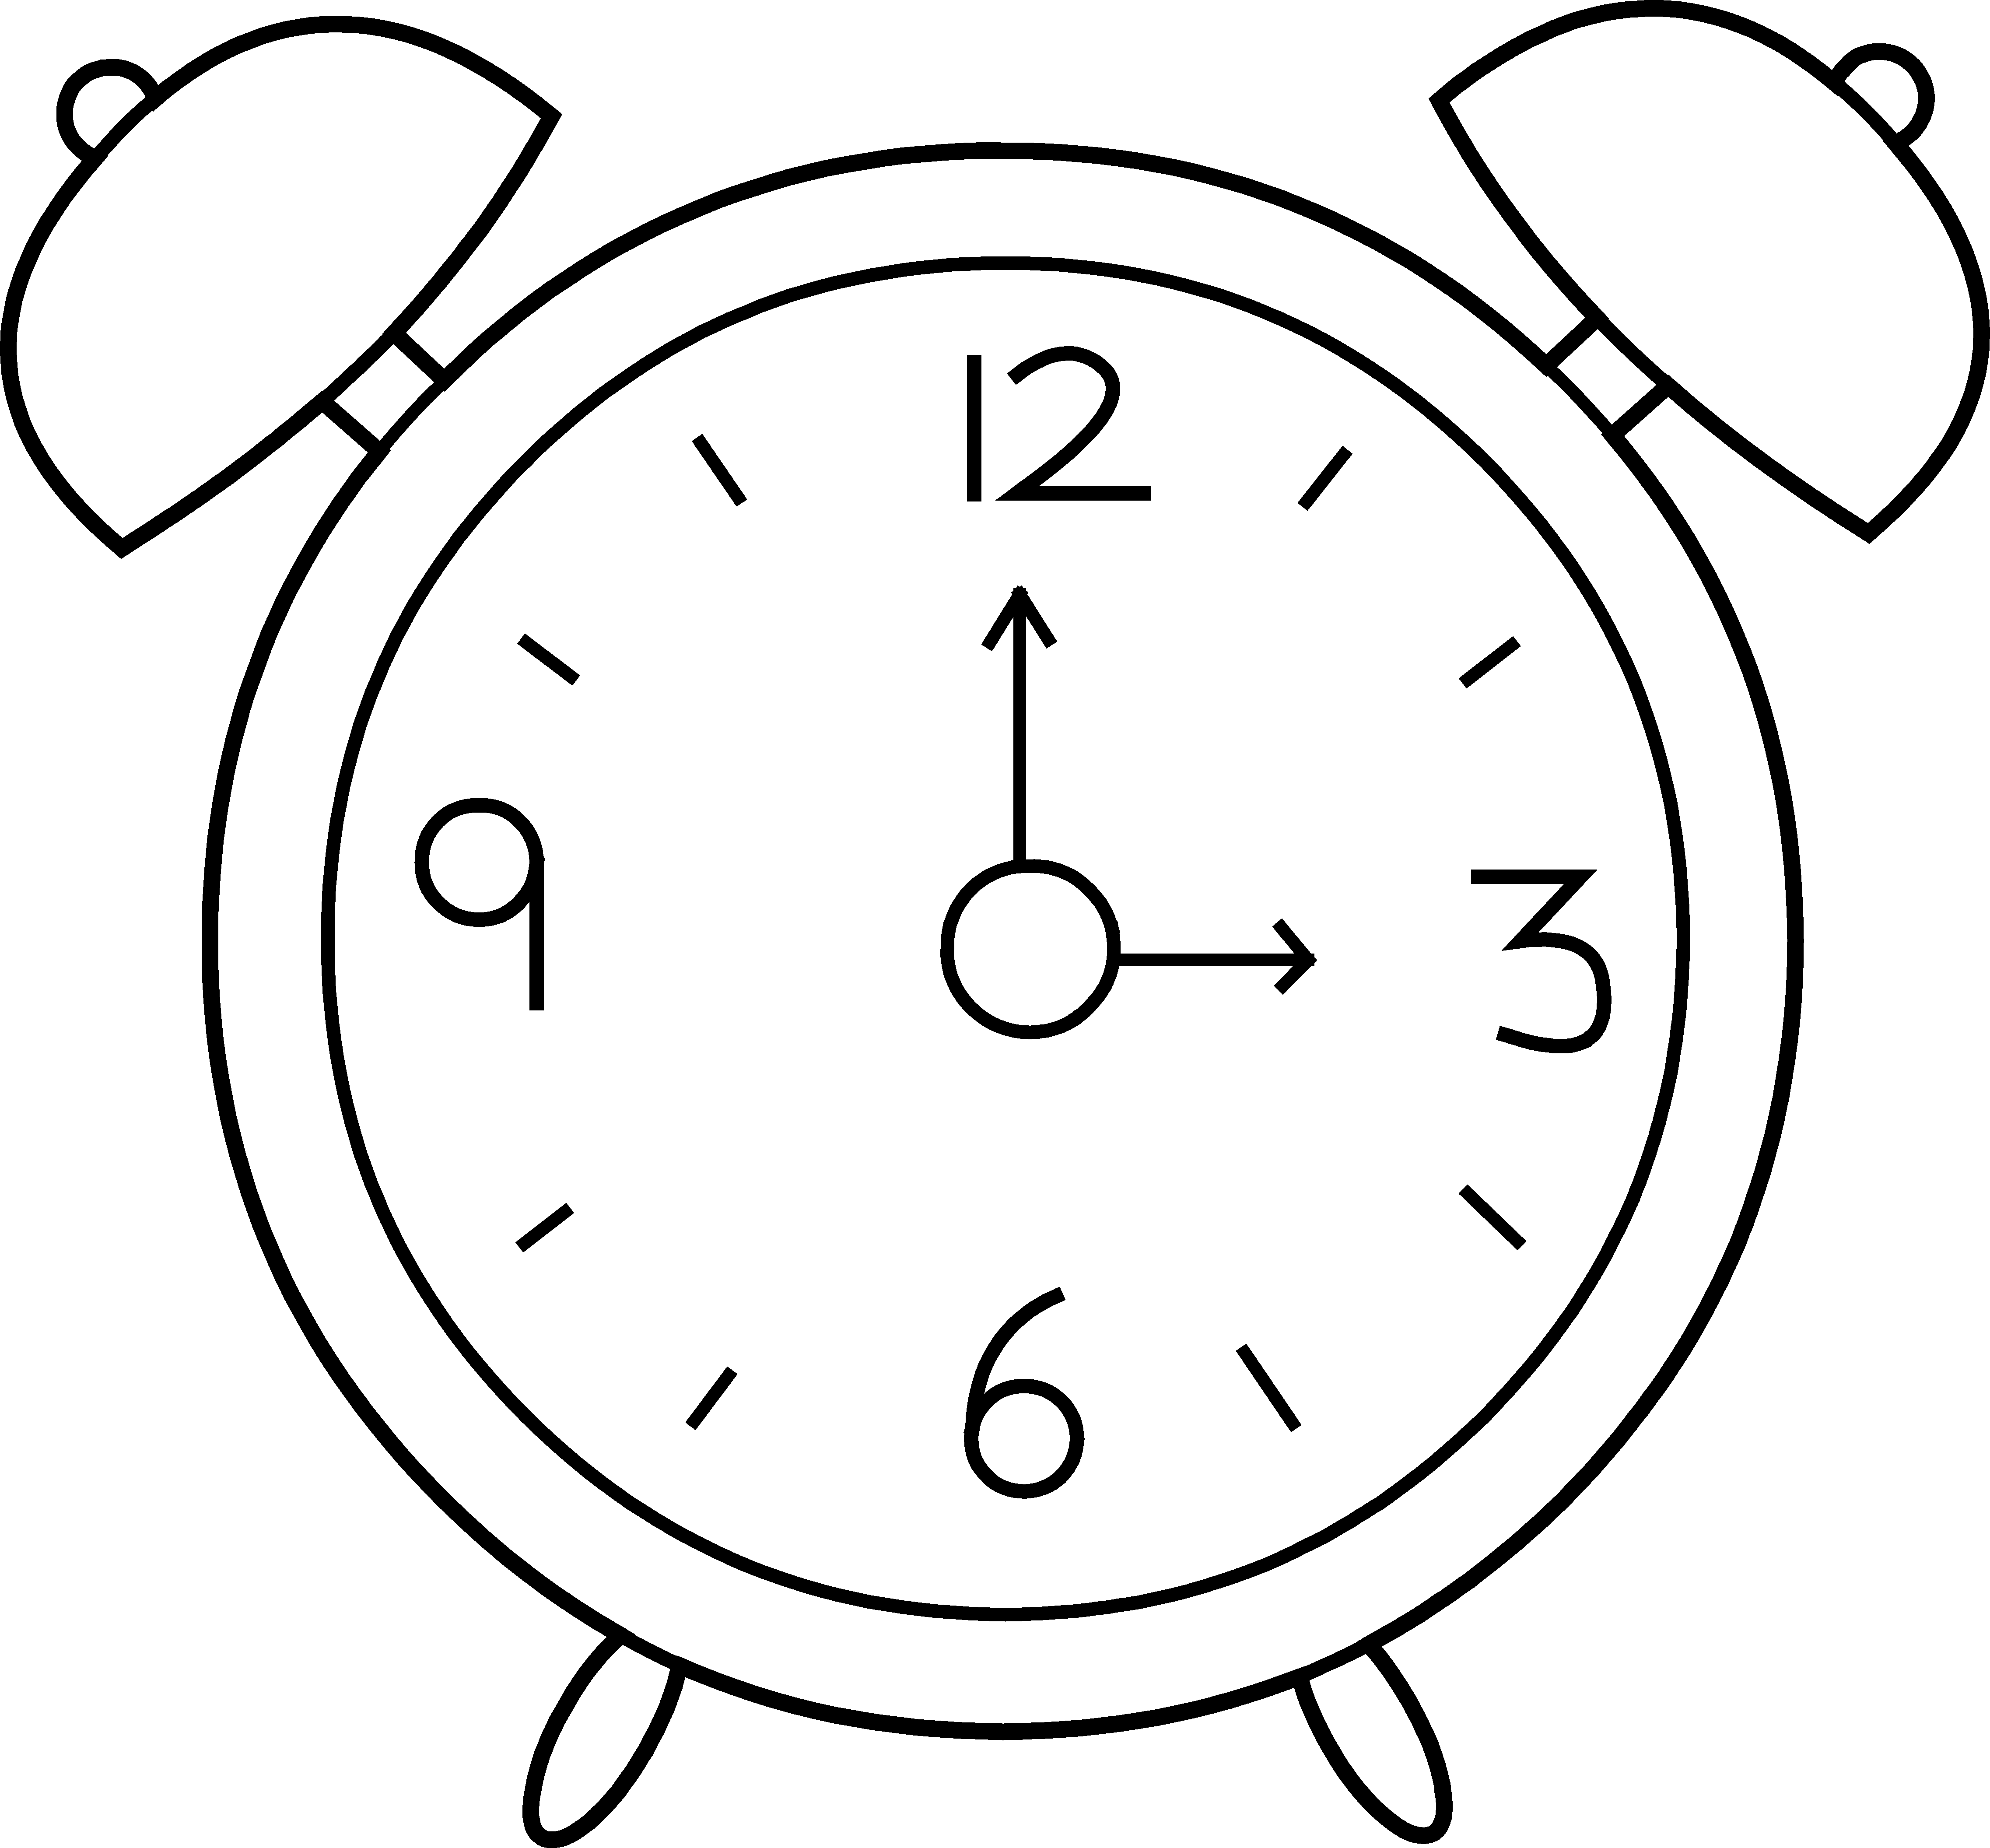 Alarm clipart happy. Of people setting their